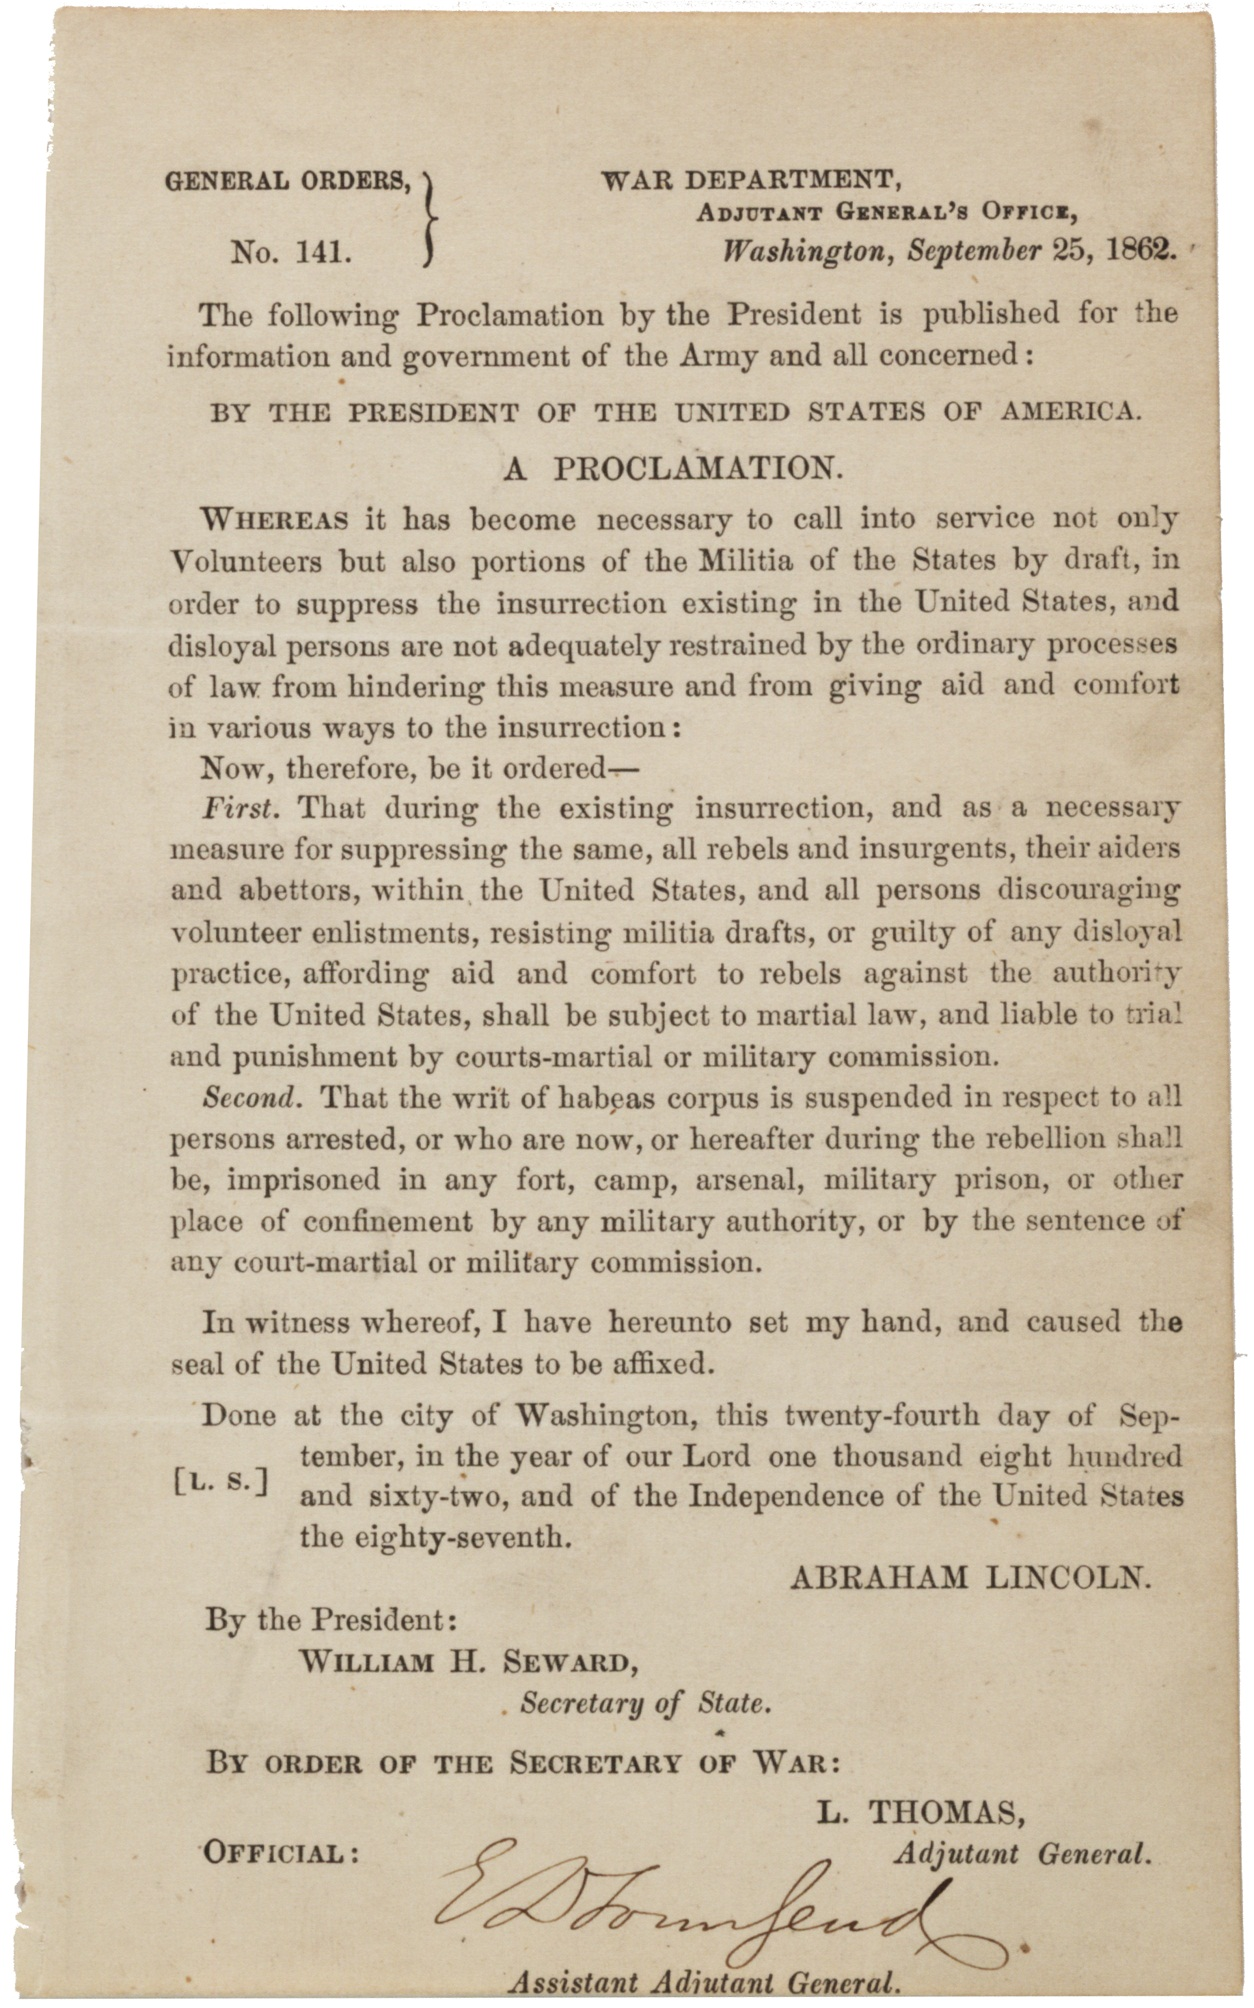 A Proclamation On The Suspension Of Habeas Corpus 1862